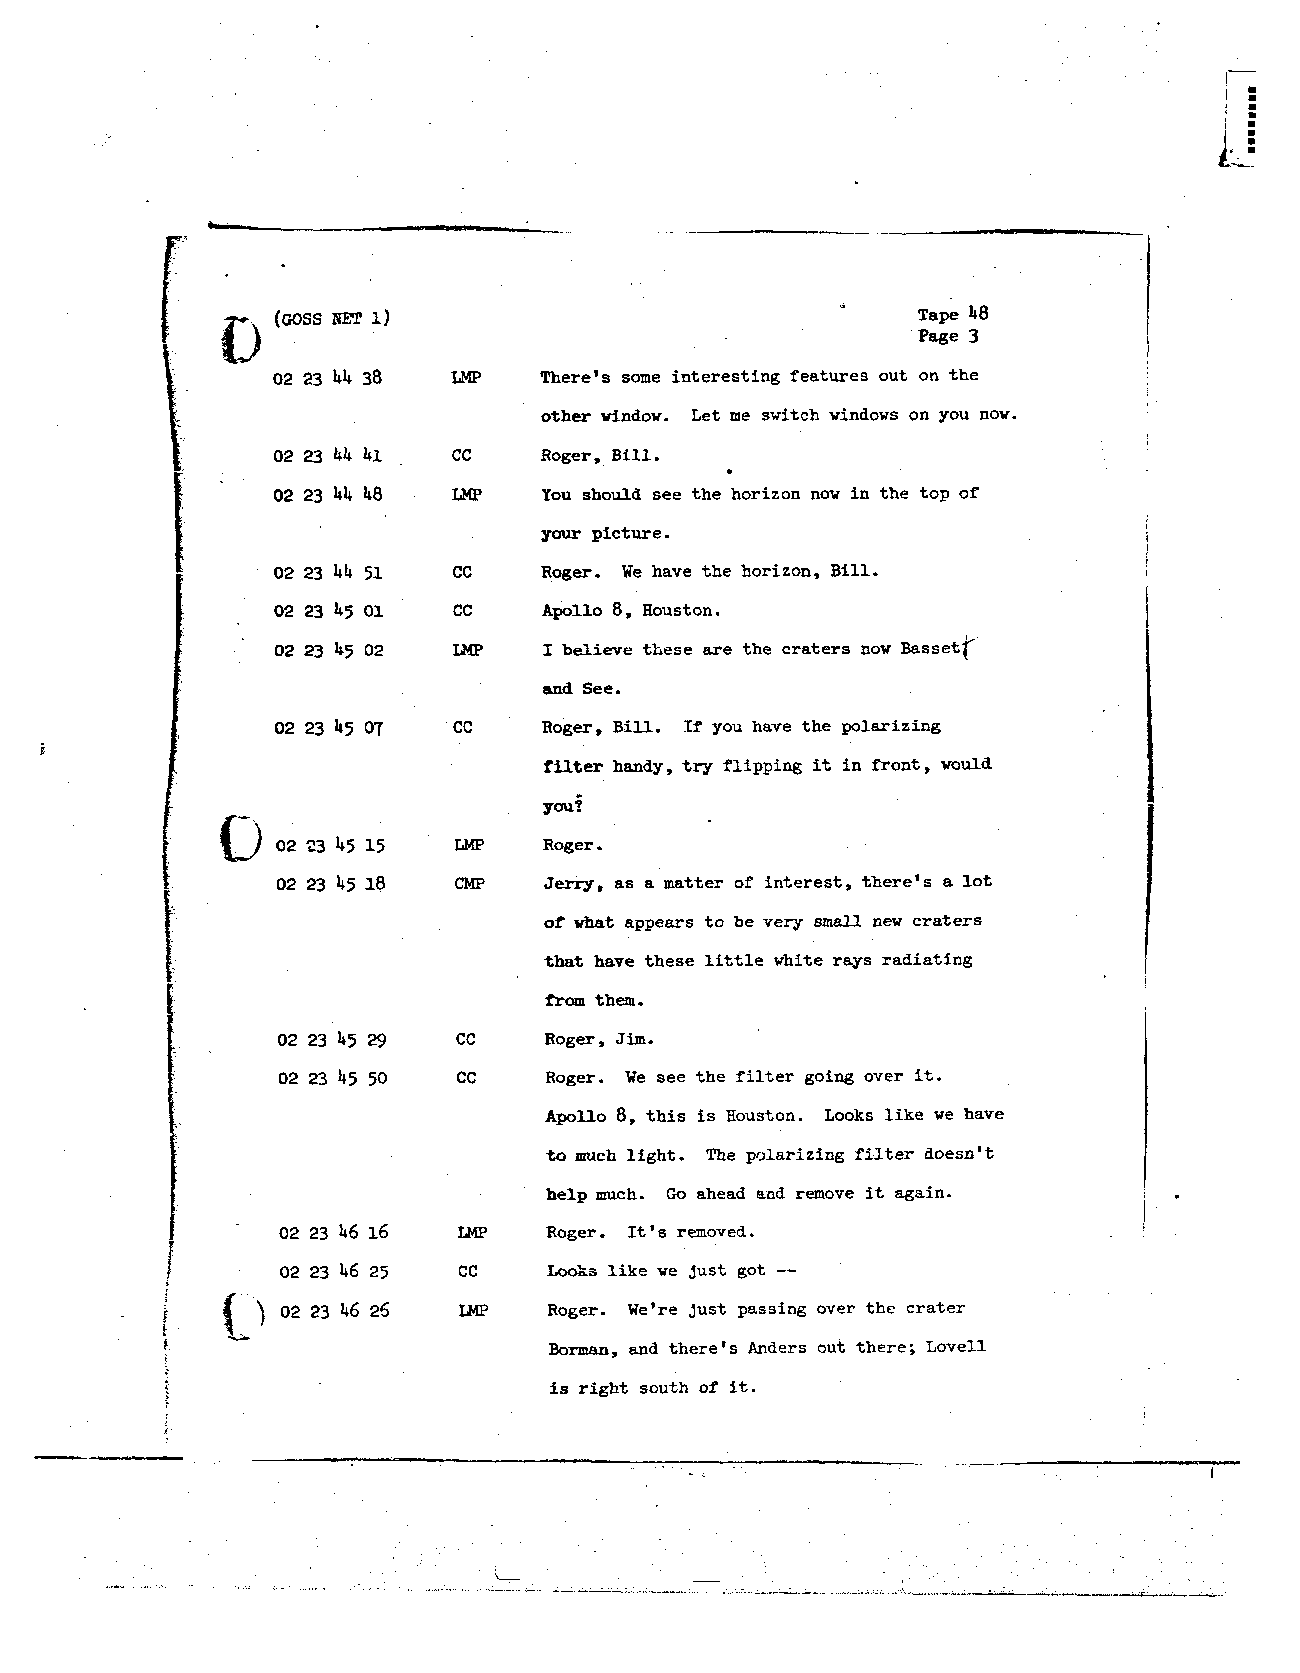 Page 375 of Apollo 8's original transcript